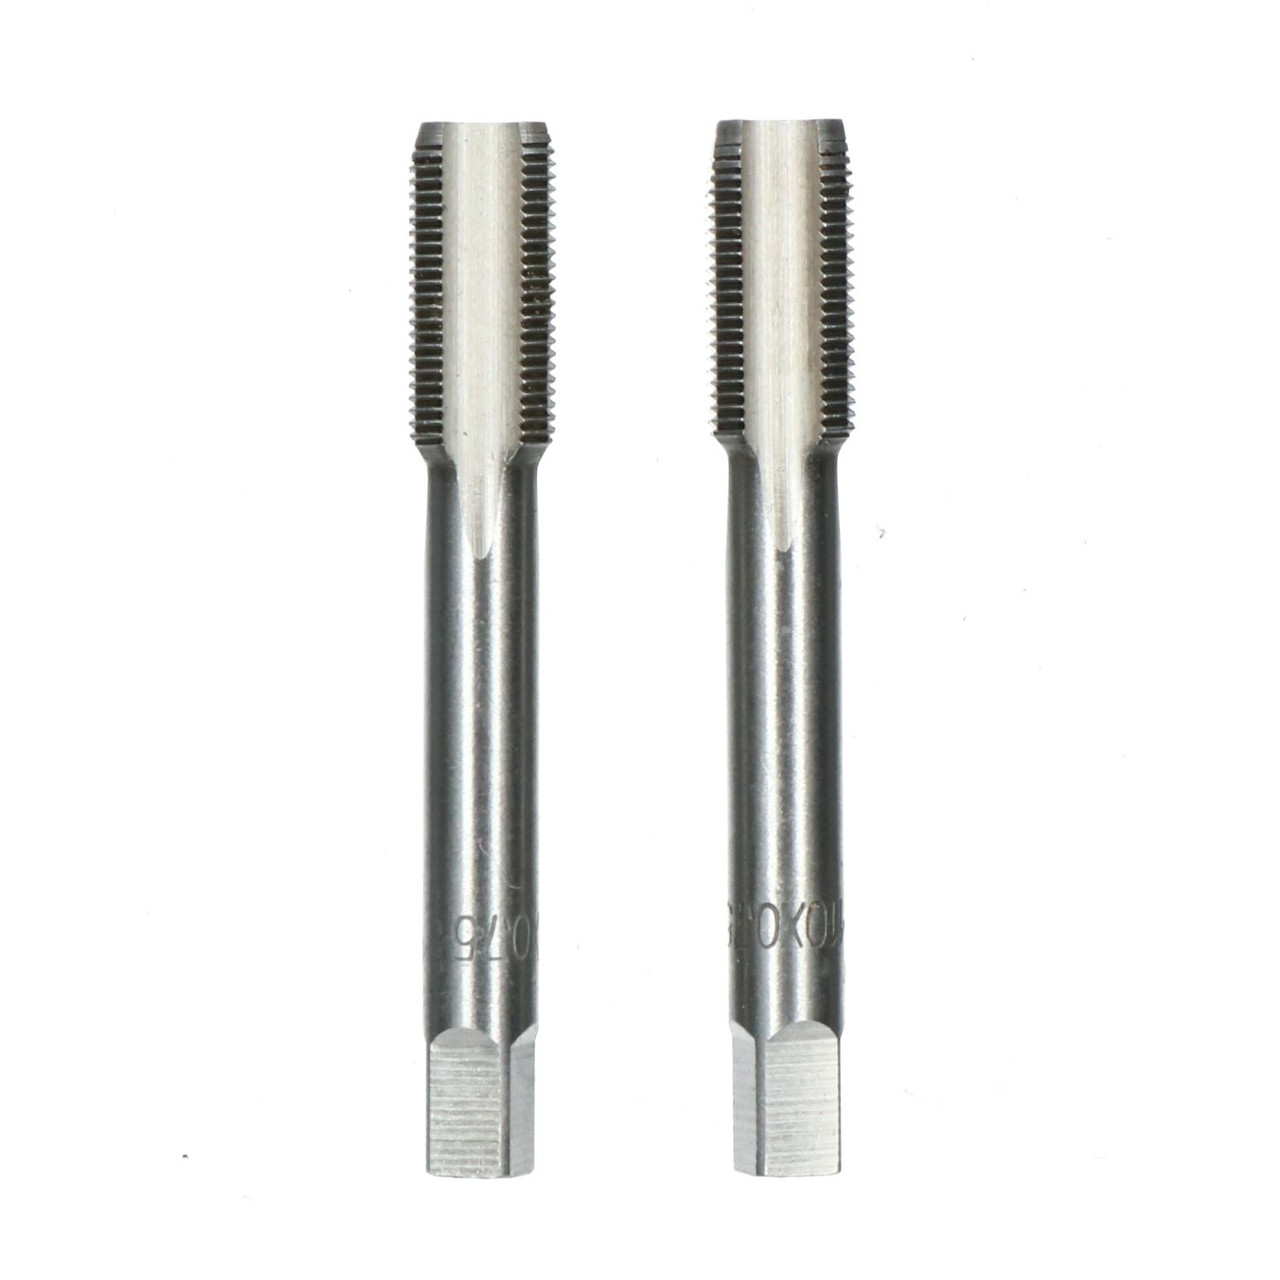 Tungsten Steel Hand Tap M10 x 1.25 Metric Pitch Drilling Tool Taper /& Plug